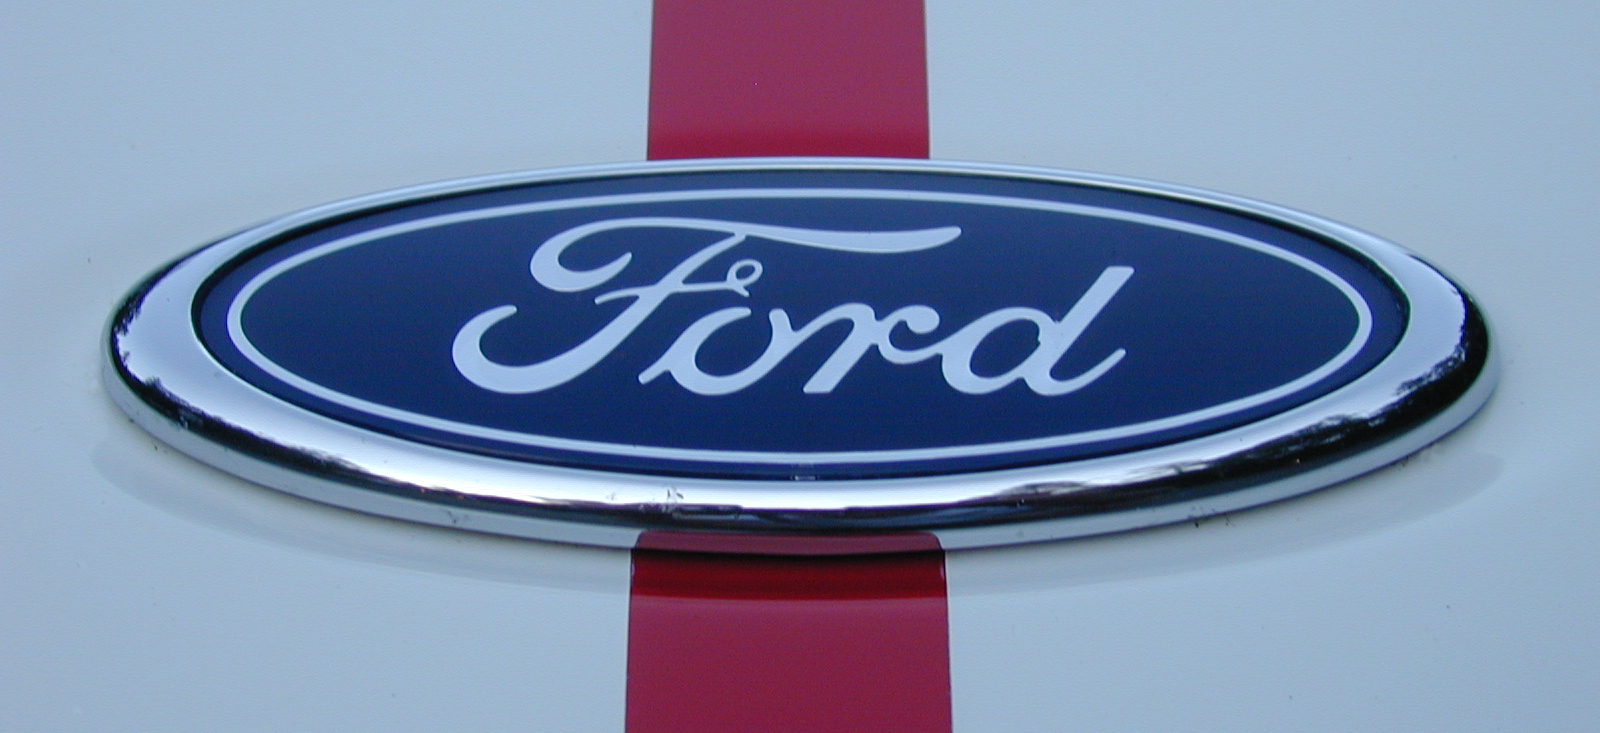 2005 Ford GT badge